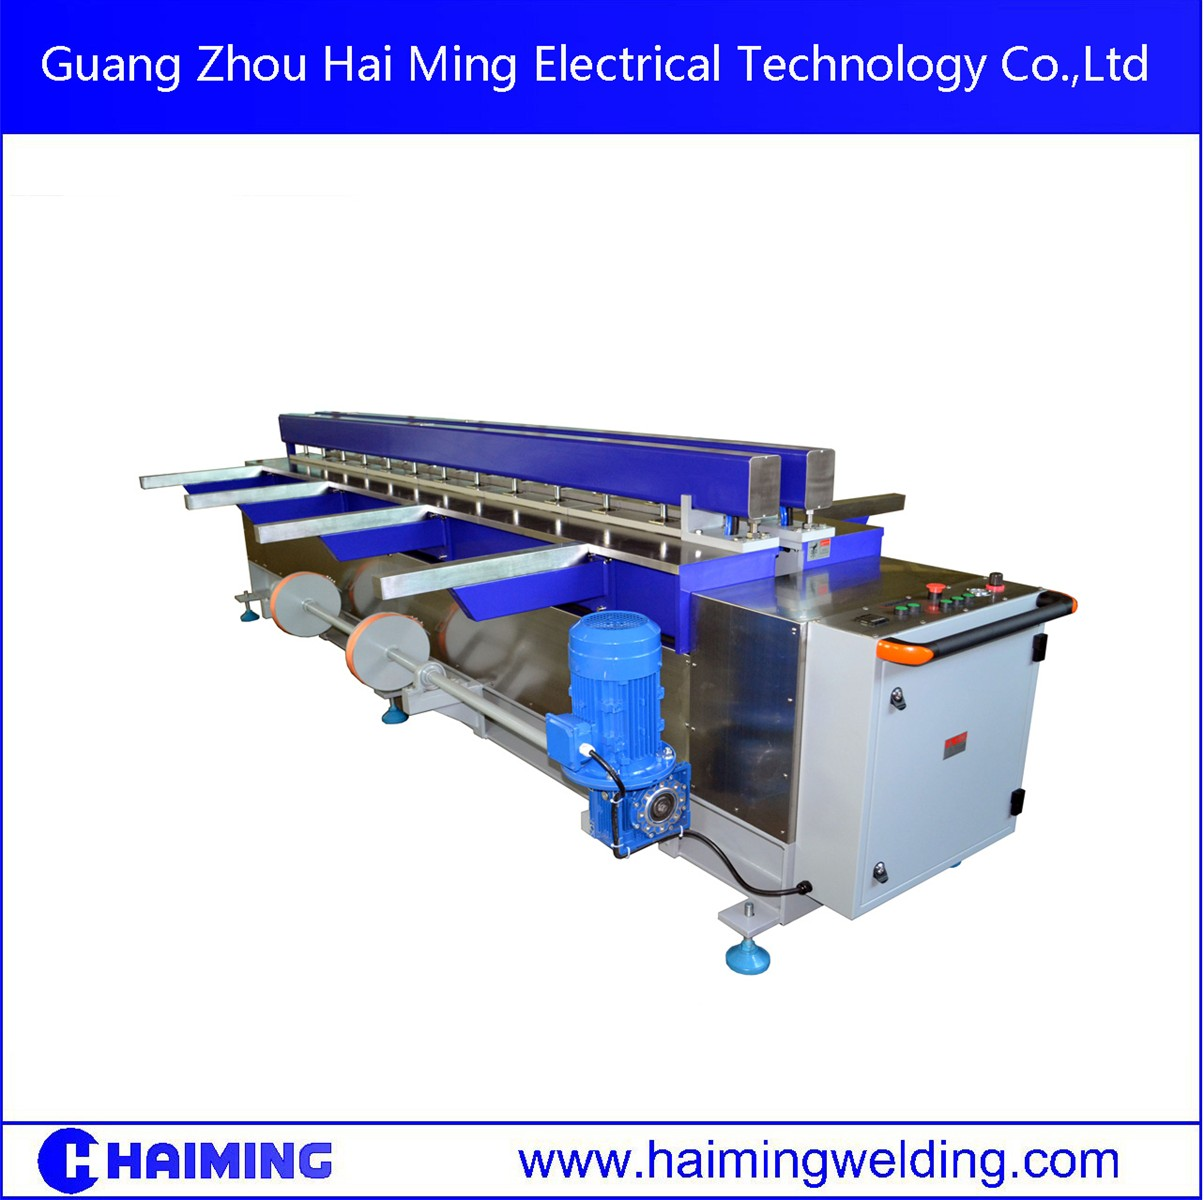 Cheap HaiMing PP Film Welding Machine